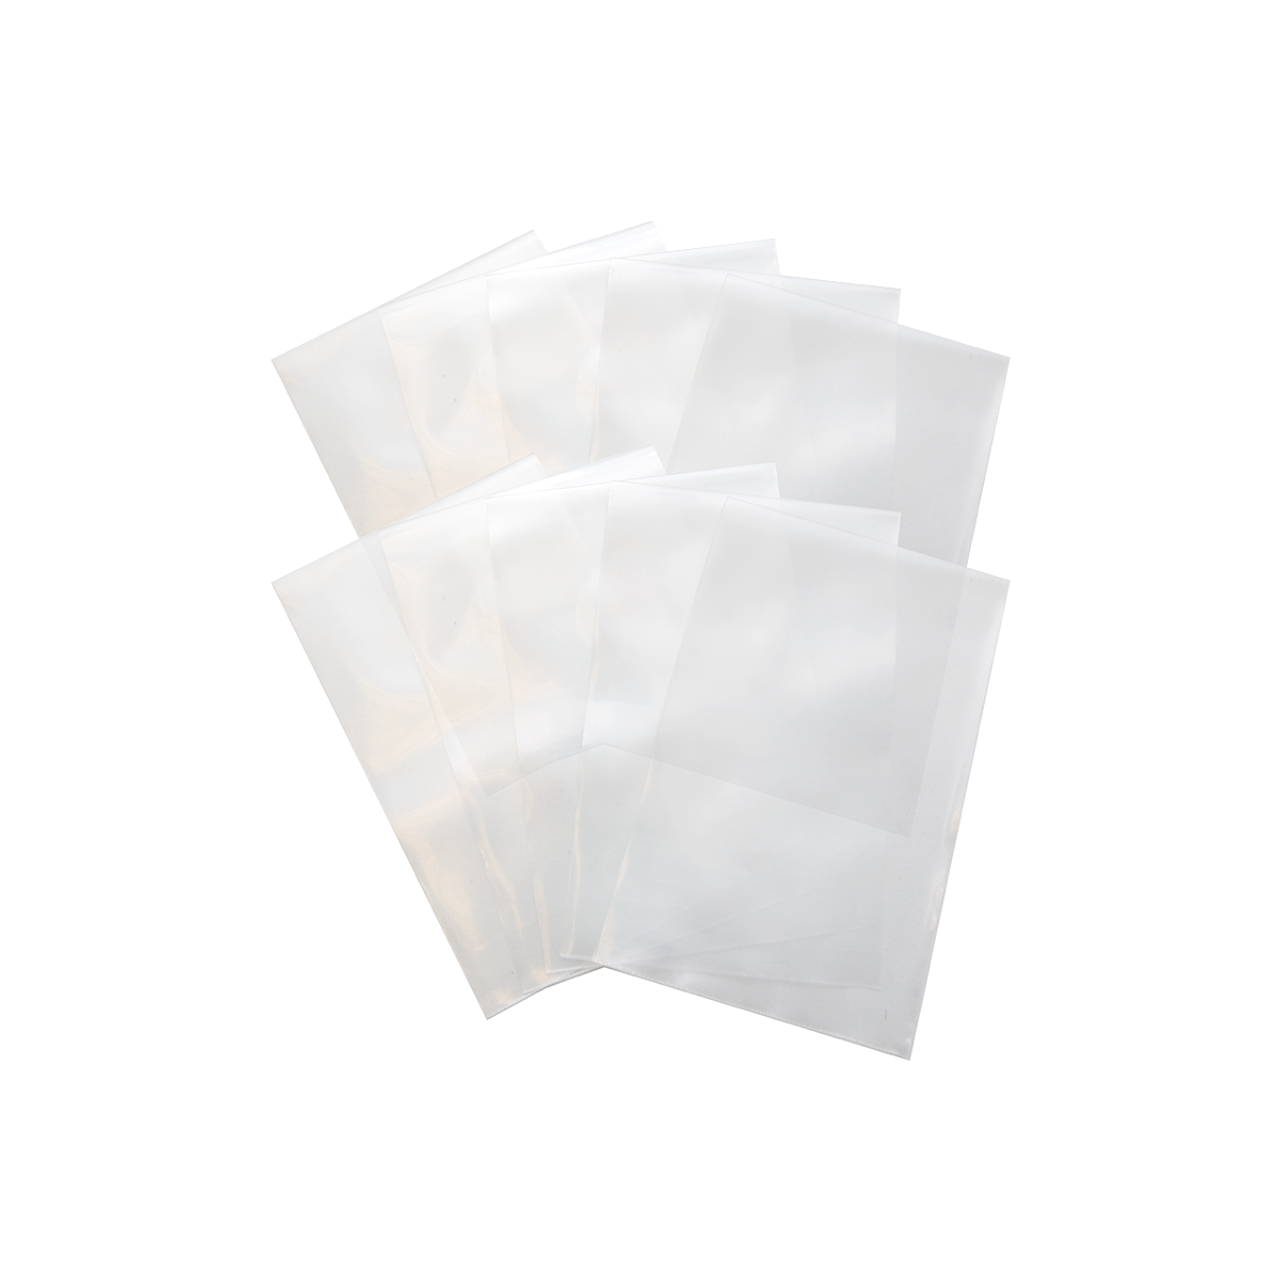 Clay Rolling Folder pack of 10